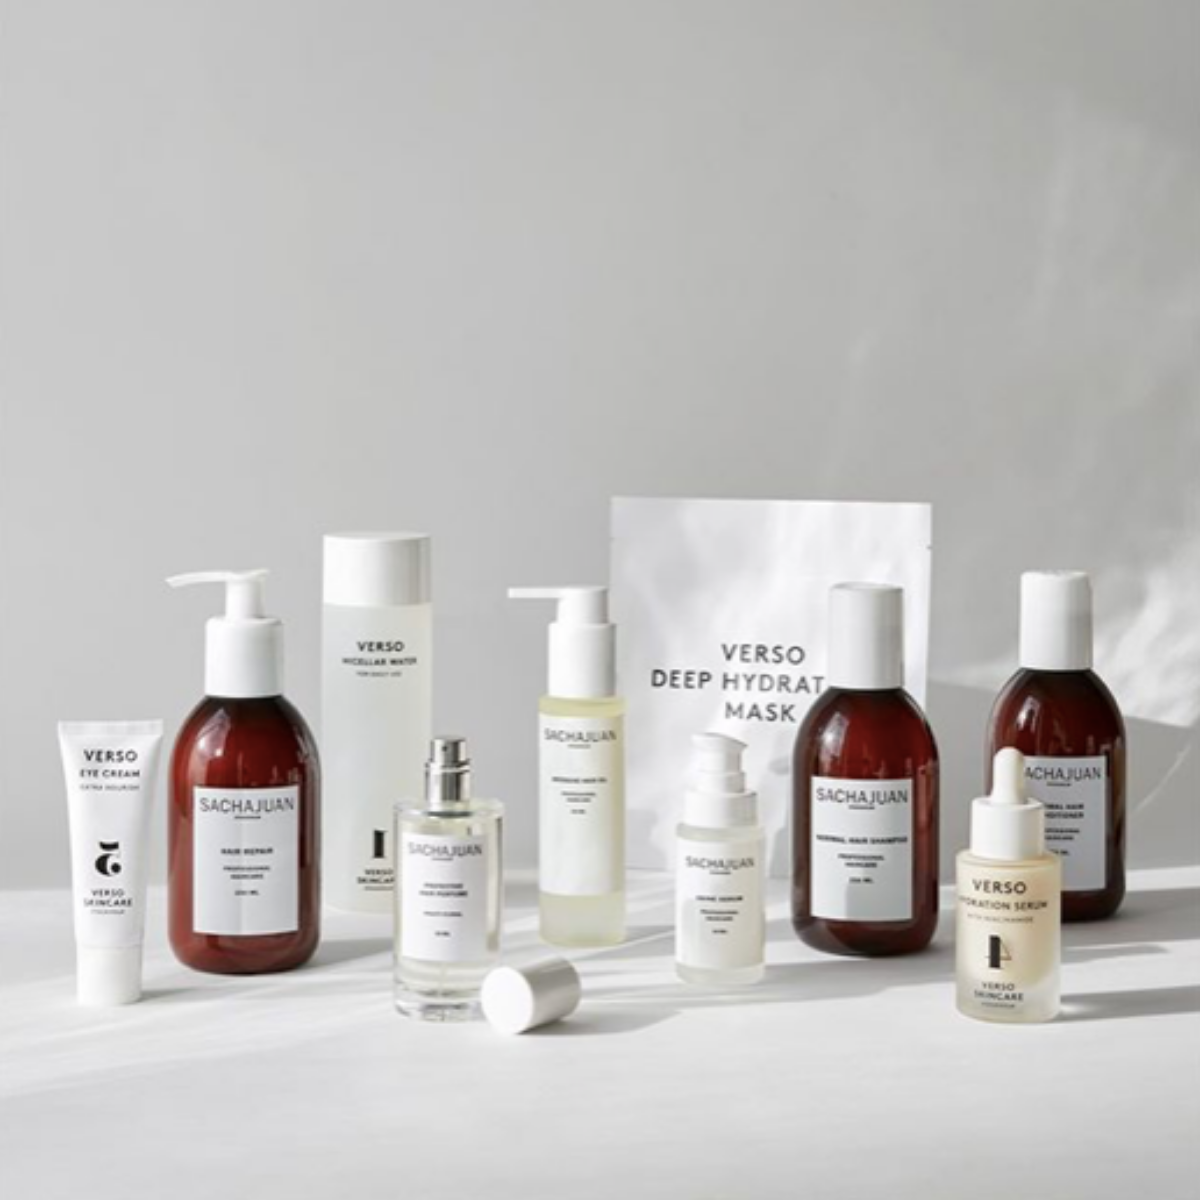 Participate in SACHAJUAN X Verso Summer Competition Giveaway this July 2019. Image source:  @Versoskincare